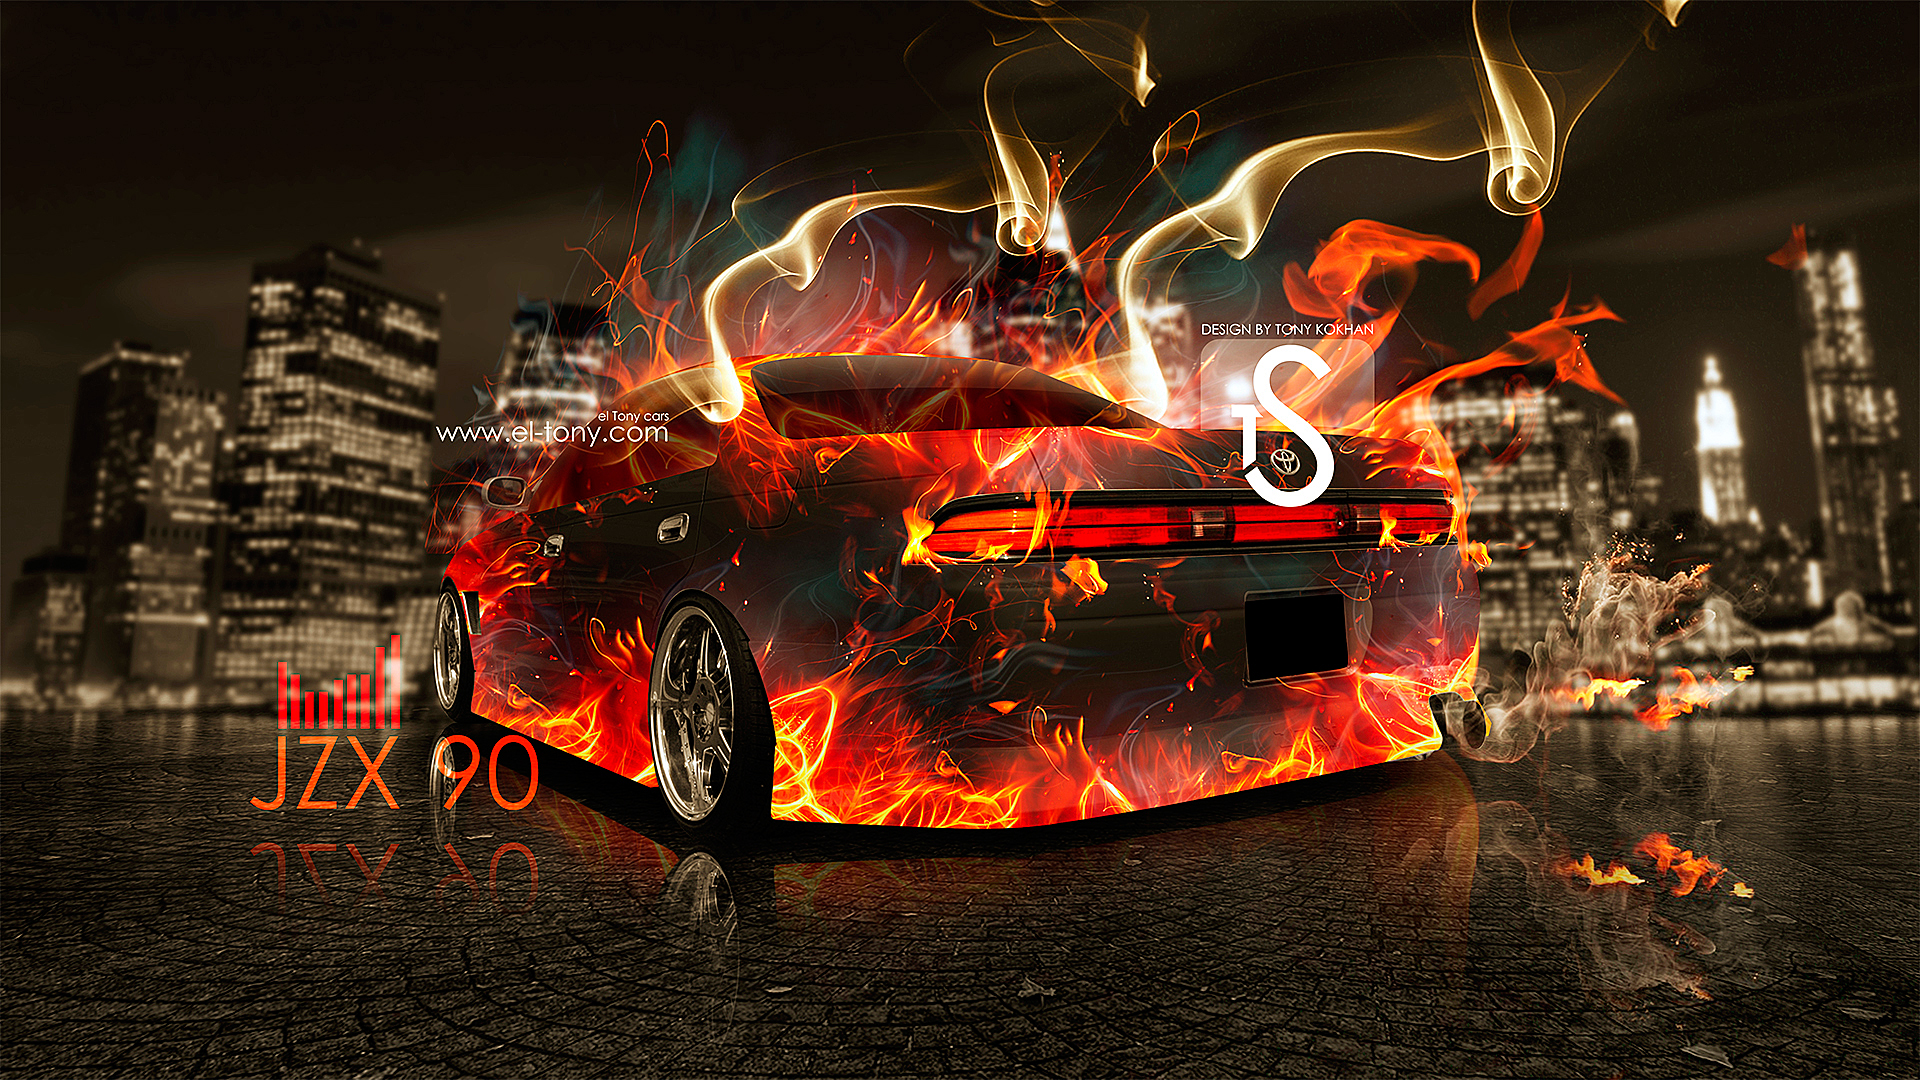 Toyota Mark 2 JZX90 Fire Car  City Smoke 2013 HD Wallpapers 1920×1080 [www.el Tony.com]